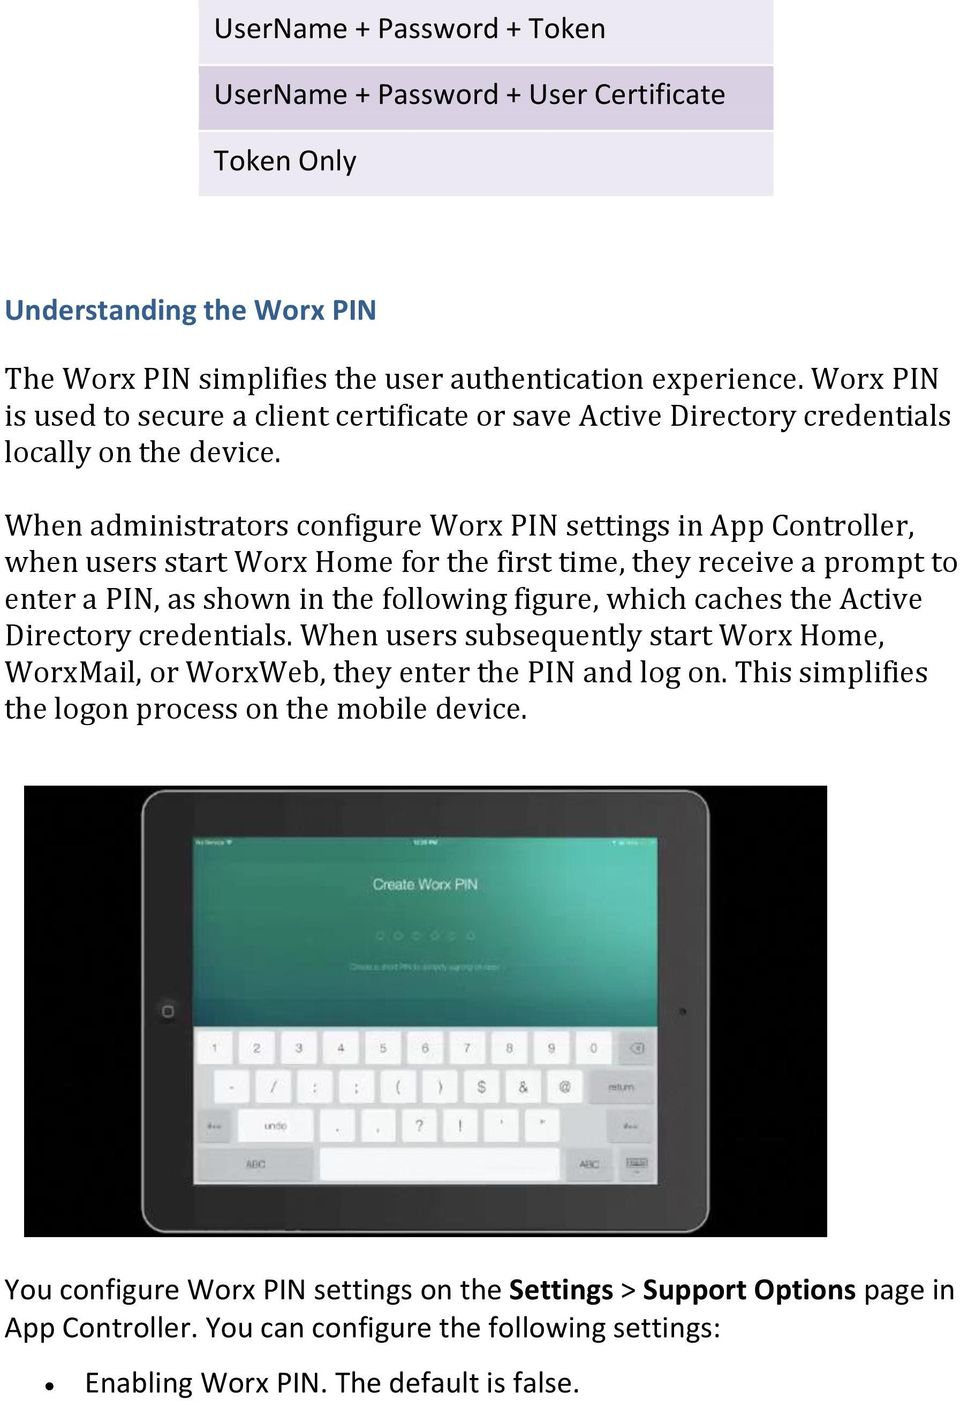 When administrators configure Worx PIN settings in App Controller, when users start Worx Home for the first time, they receive a prompt to enter a PIN, as shown in the following figure, which caches